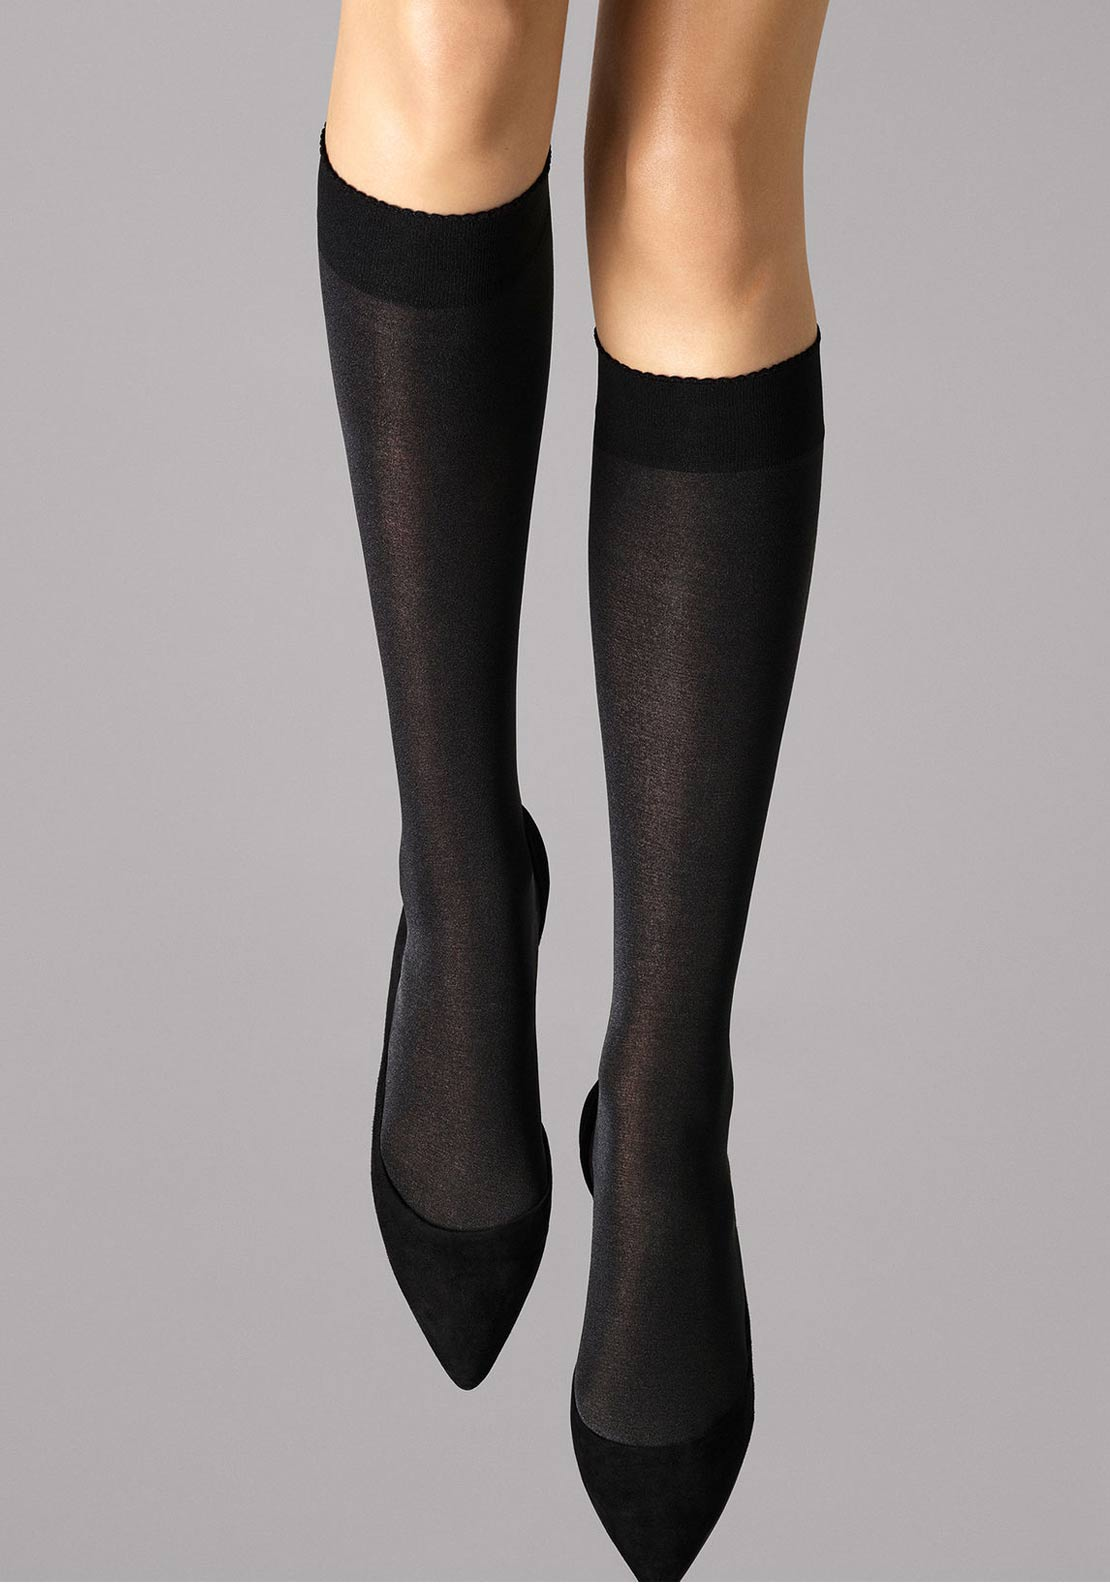 Thigh High Socks. invalid category id. Thigh High Socks. Showing 10 of 10 results that match your query. Product - CURAD Knee-High Compression Hosiery,Black,C MDSCBH. Product Image. Price $ Product Title. CURAD Knee-High Compression Hosiery,Black.